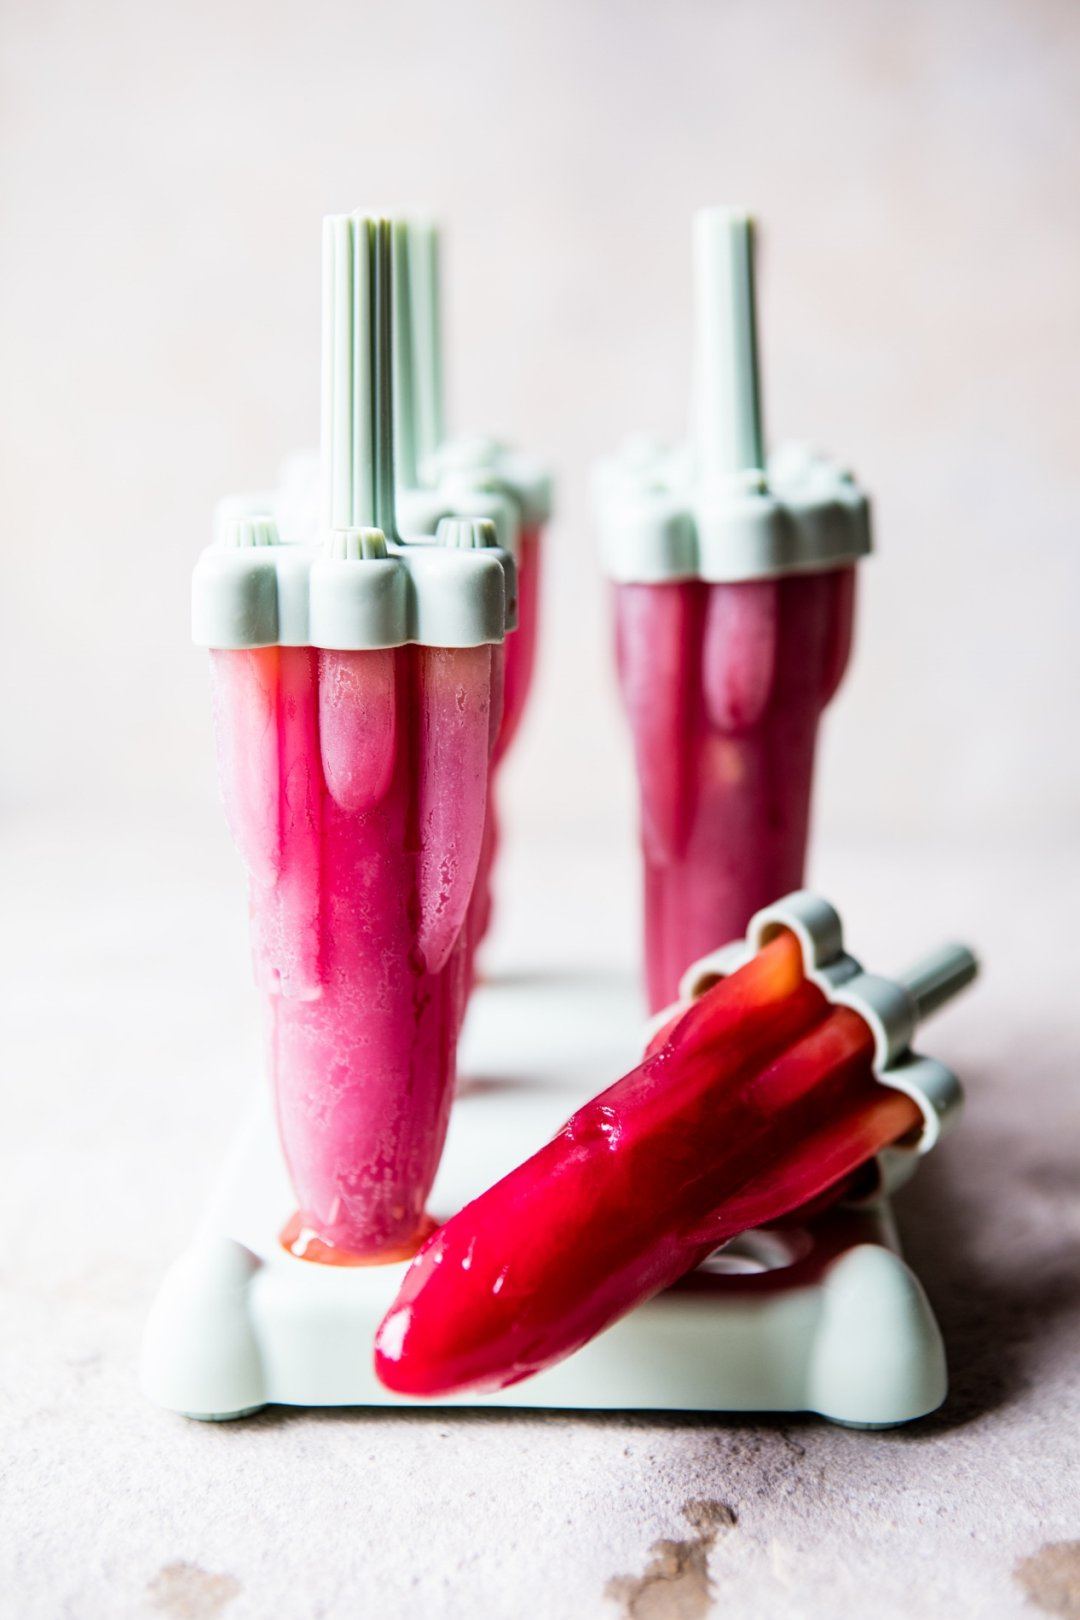 Red popsicles in popsicle molds